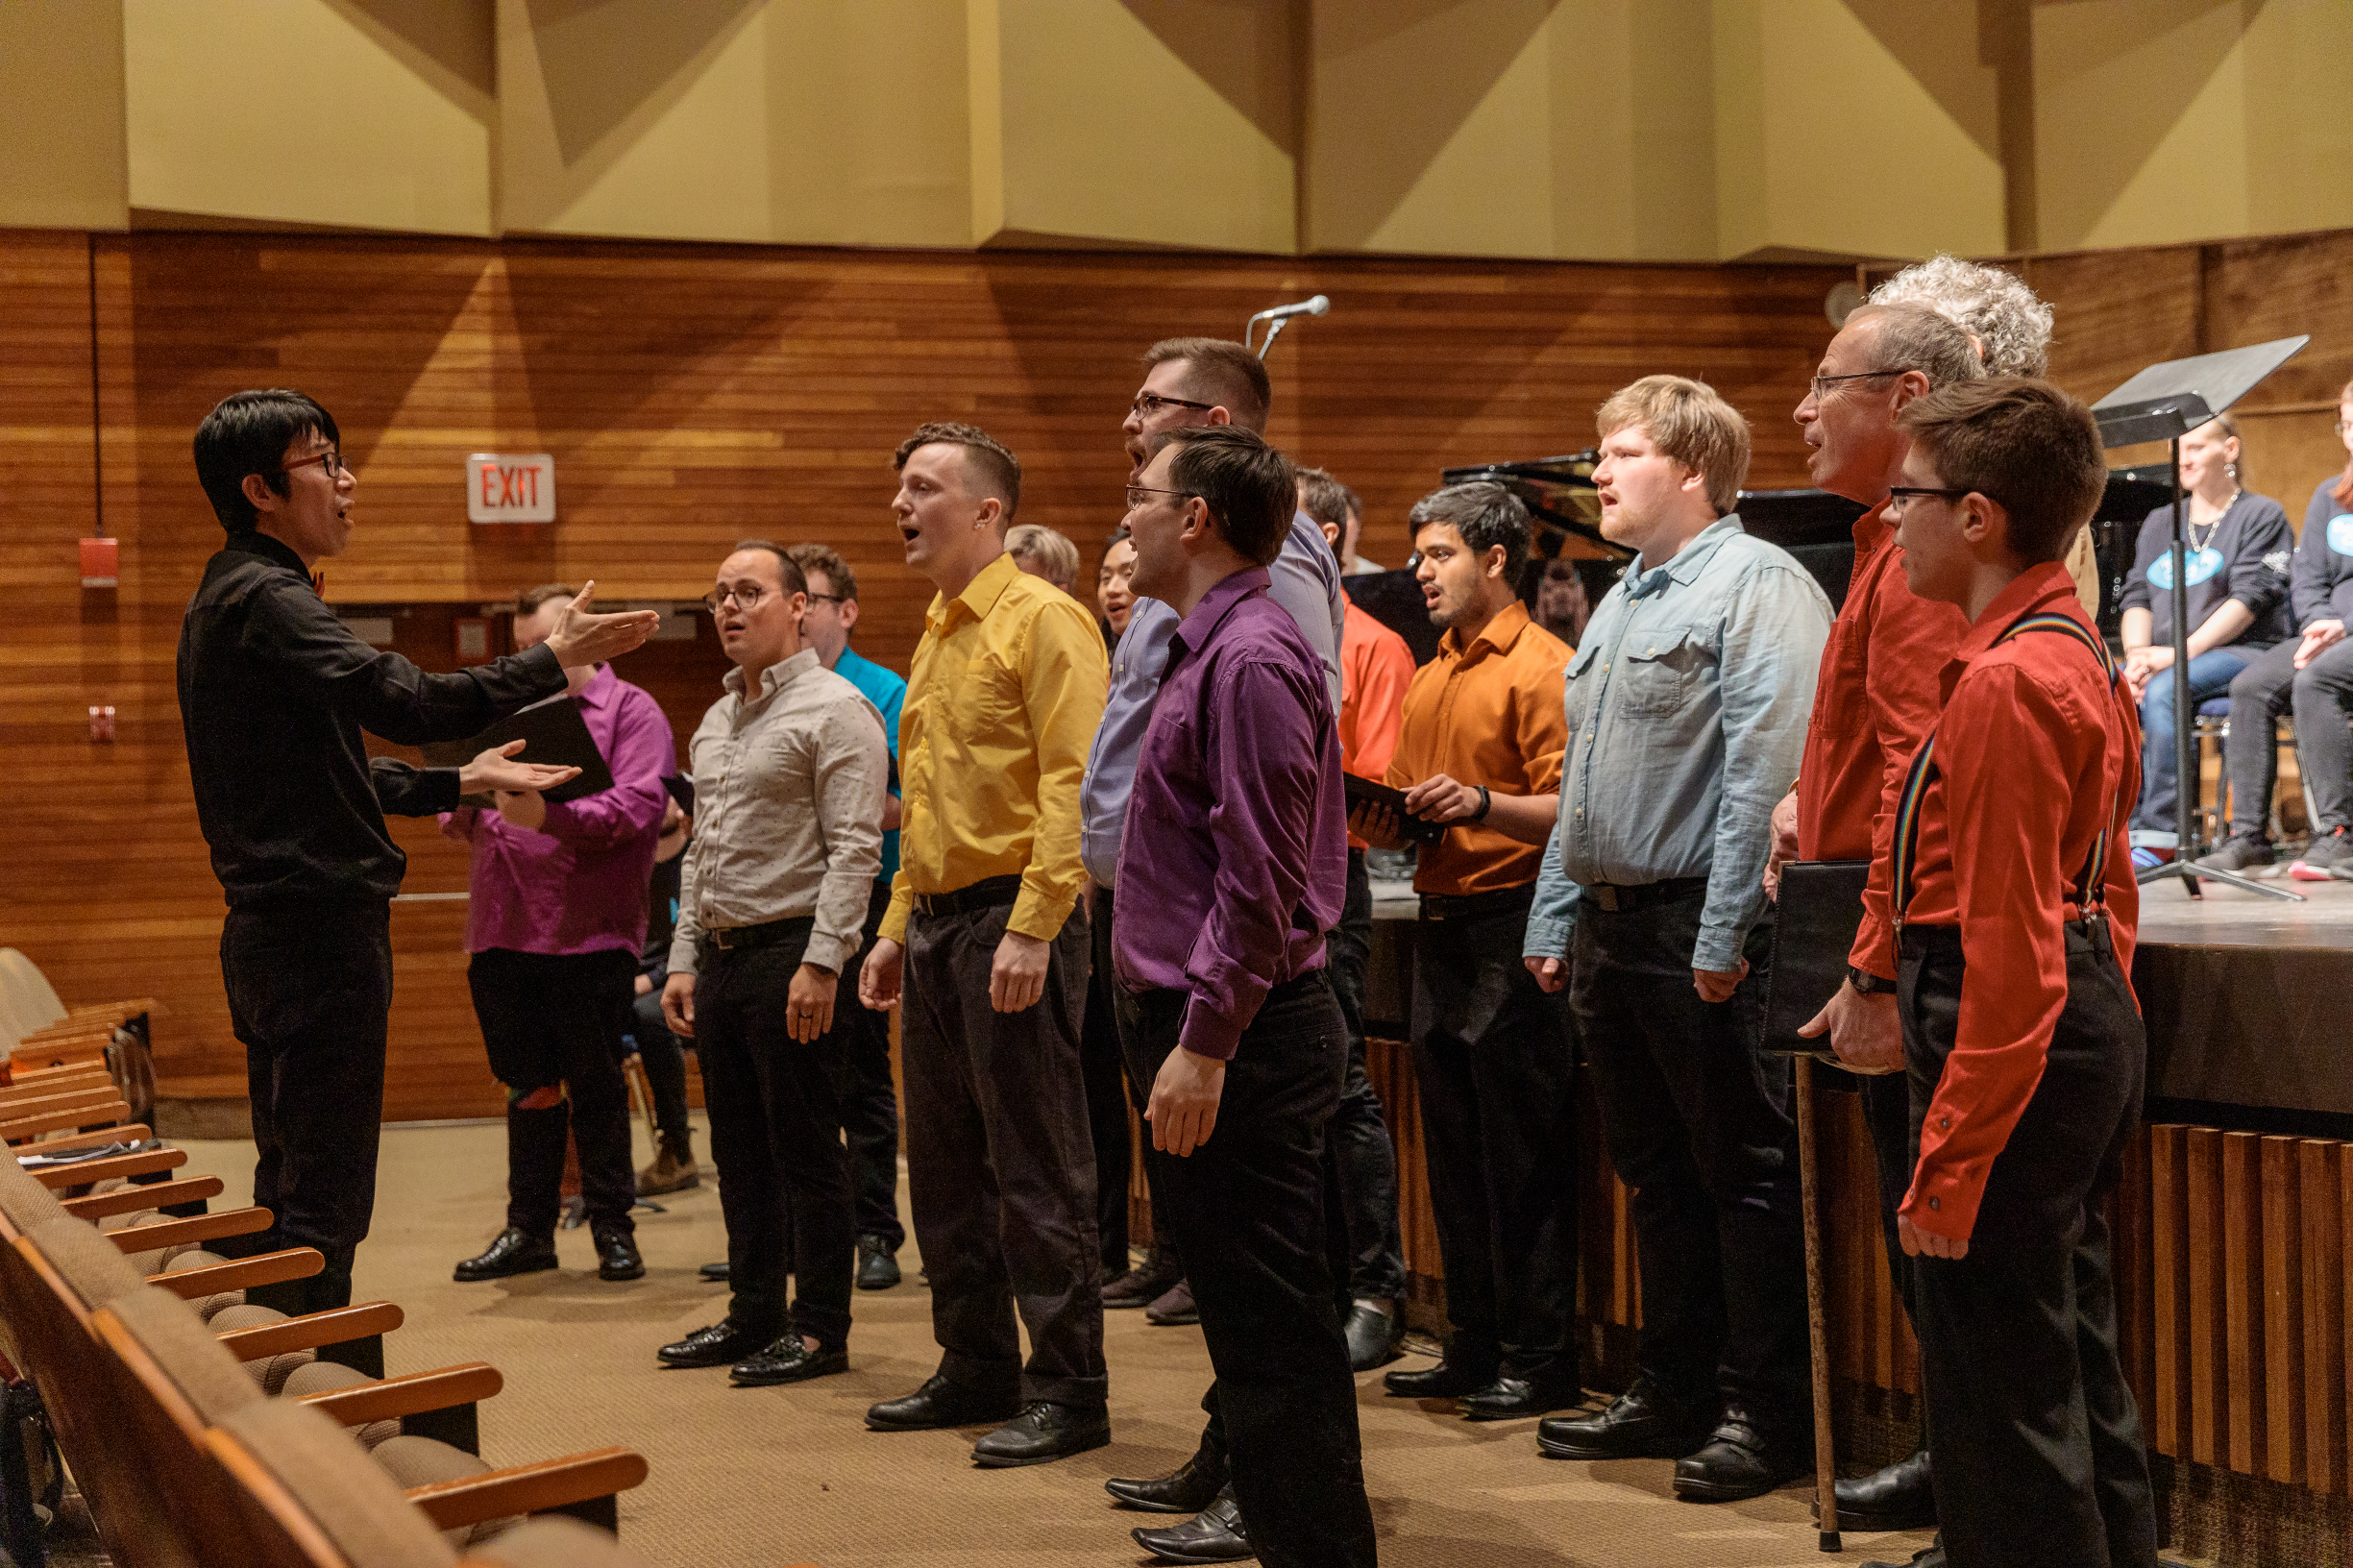 St. John's Gay Men's Chorus